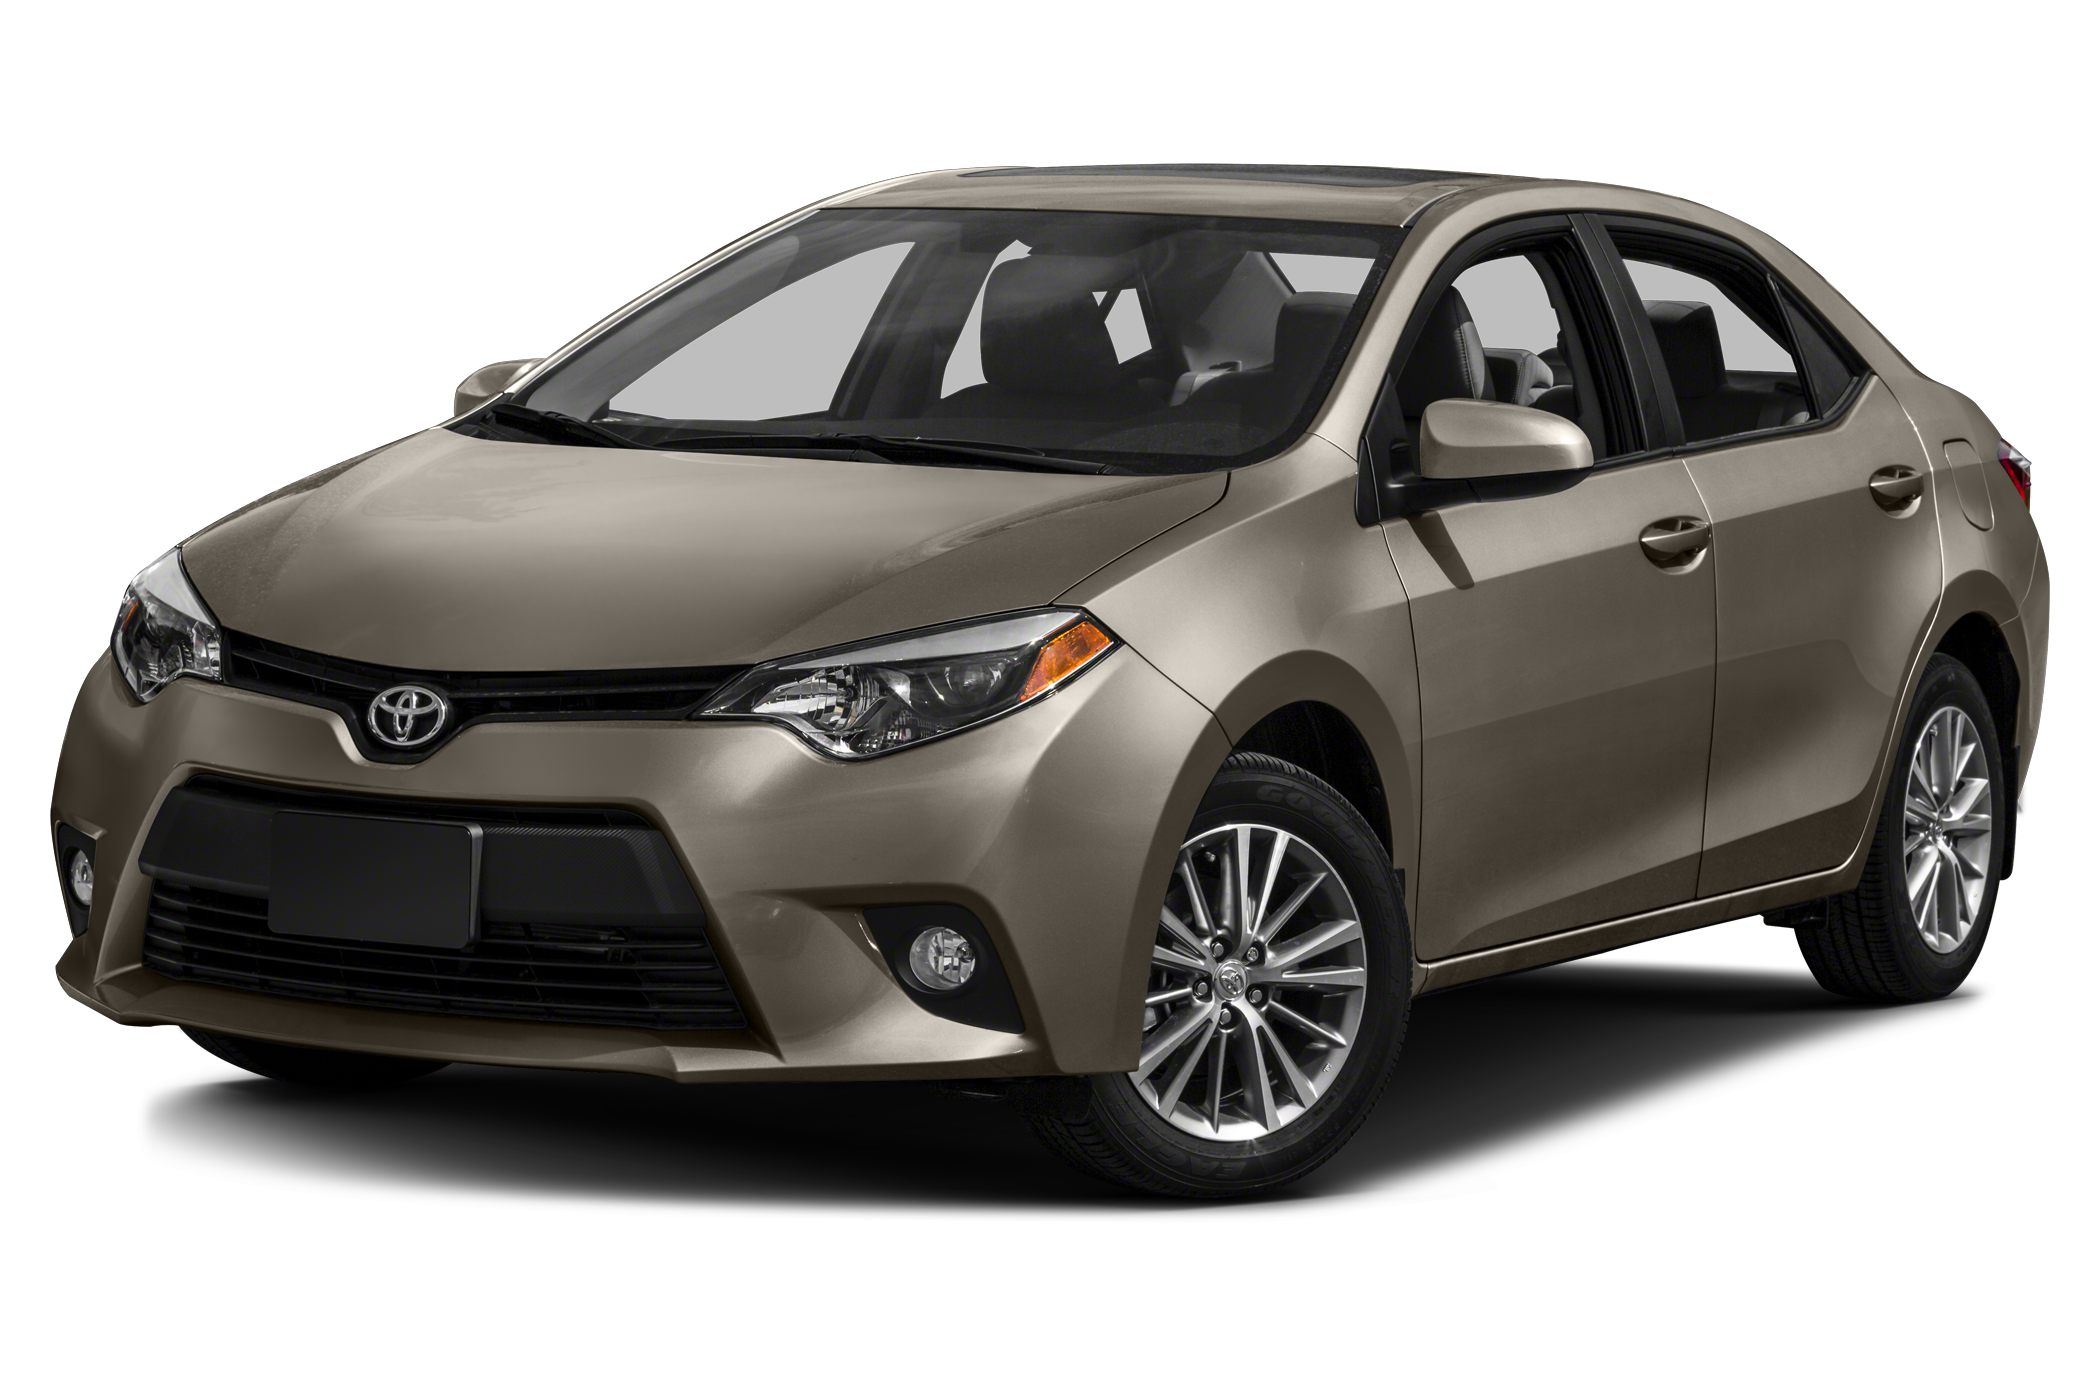 2015 Toyota Corolla LE Sedan for sale in Rogers for $20,068 with 2 miles.